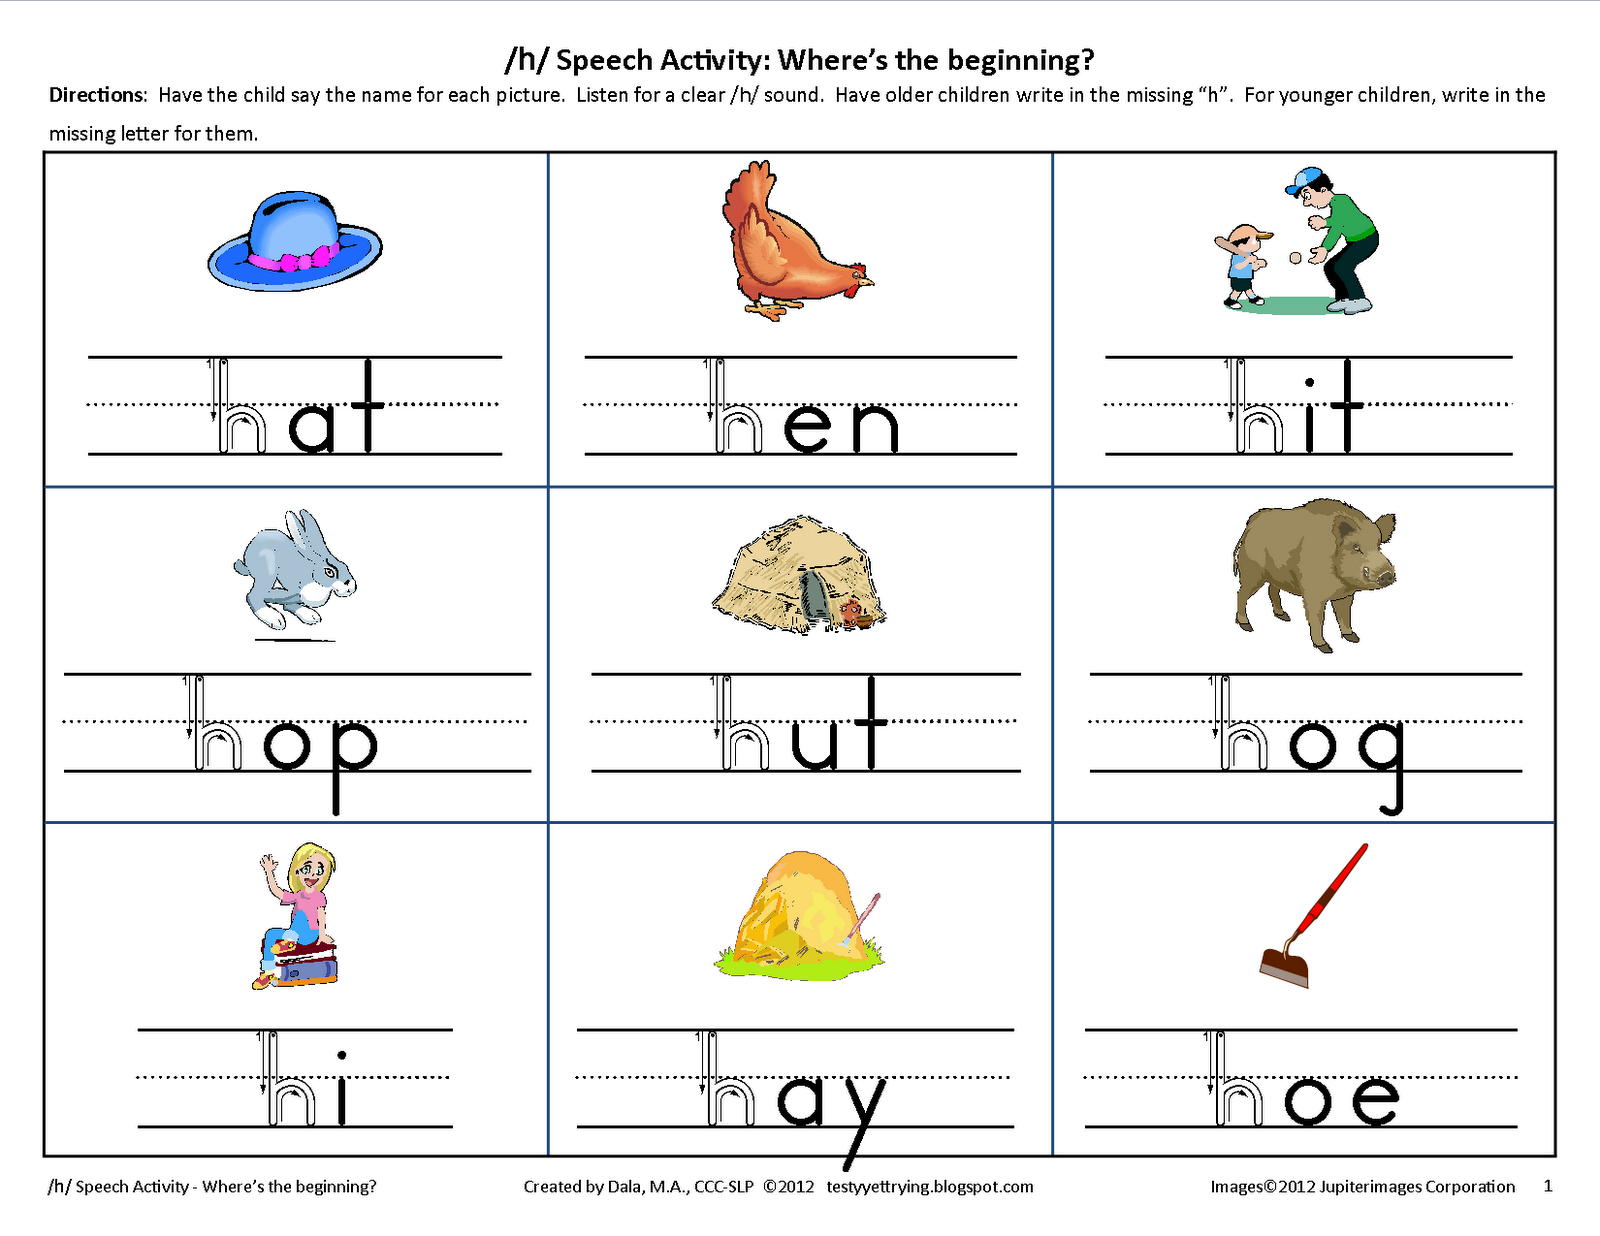 Aldiablosus  Unique Testy Yet Trying Initial H Speech Worksheet With Fascinating Make Classroom Teachers Happy Reinforce Phonics And Handwriting And Practice Speech All At The Same Time With Cool Sentence Grammar Worksheets Also Gcd And Lcm Worksheets In Addition Noun And Verb Worksheets For Rd Grade And Math Addition Worksheet Generator As Well As Printable Math Worksheets Grade  Additionally Phonics Worksheets For Beginners From Testyyettryingblogspotcom With Aldiablosus  Fascinating Testy Yet Trying Initial H Speech Worksheet With Cool Make Classroom Teachers Happy Reinforce Phonics And Handwriting And Practice Speech All At The Same Time And Unique Sentence Grammar Worksheets Also Gcd And Lcm Worksheets In Addition Noun And Verb Worksheets For Rd Grade From Testyyettryingblogspotcom